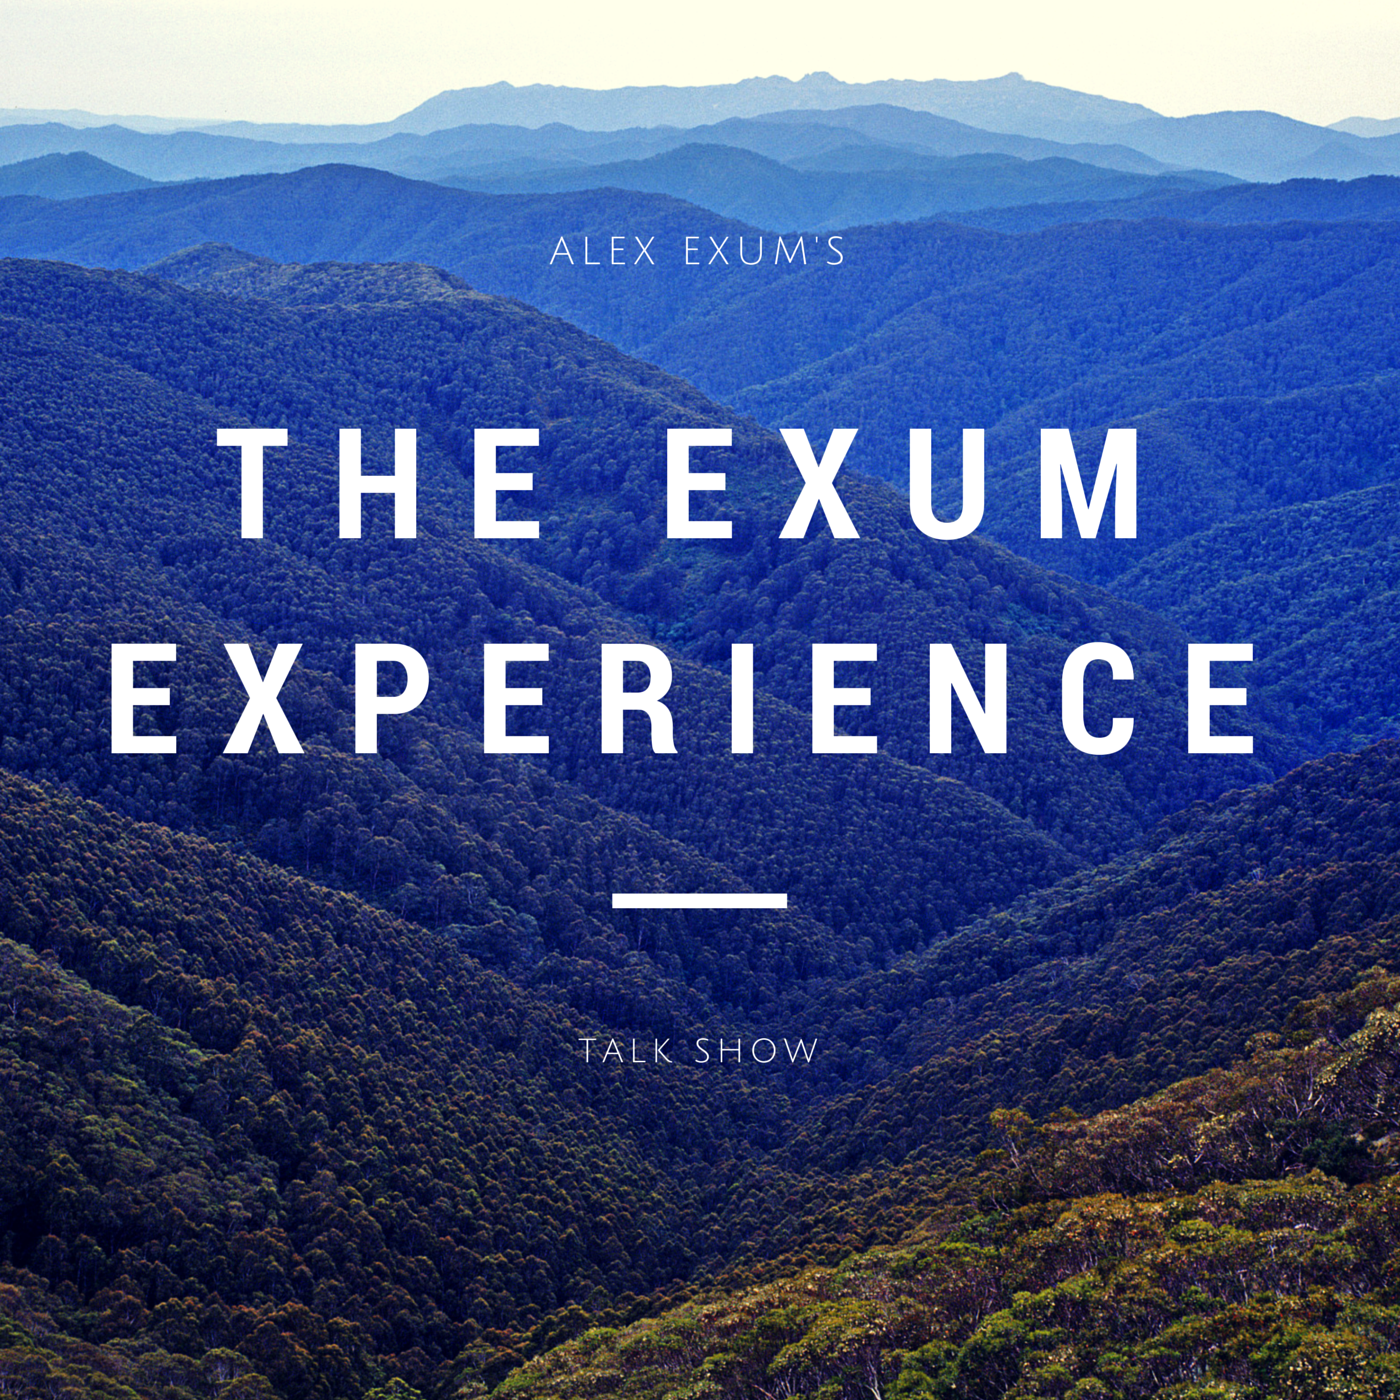 Alex Exum's | The Exum Experience Talk Show